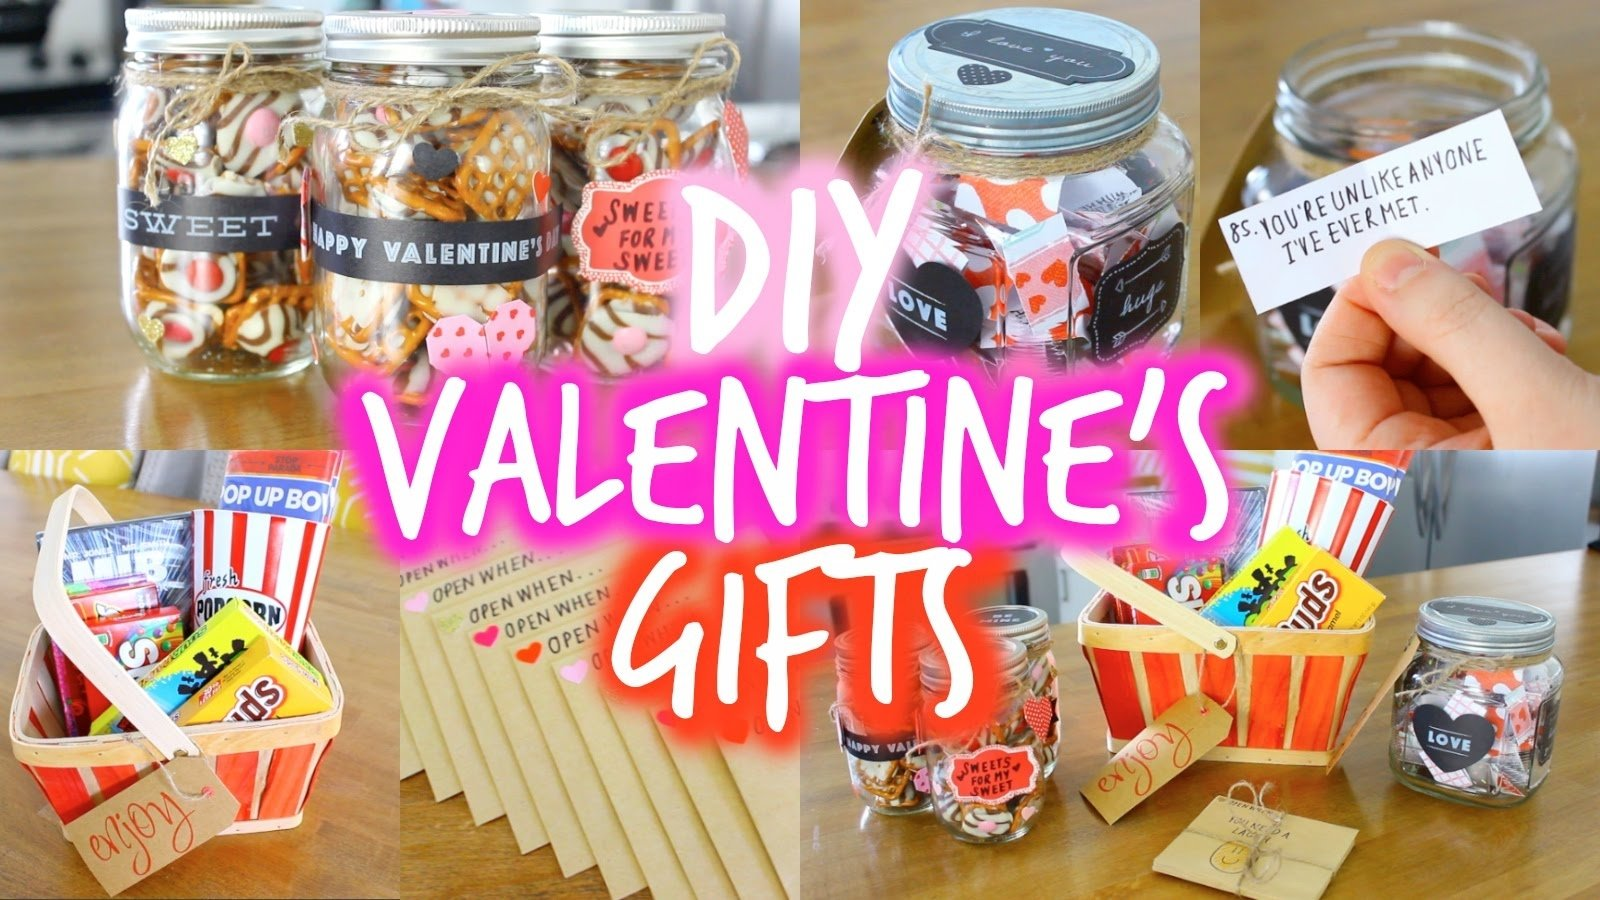 10 Famous Valentines Gift For Him Ideas easy diy valentines day gift ideas for your boyfriend youtube 20 2020